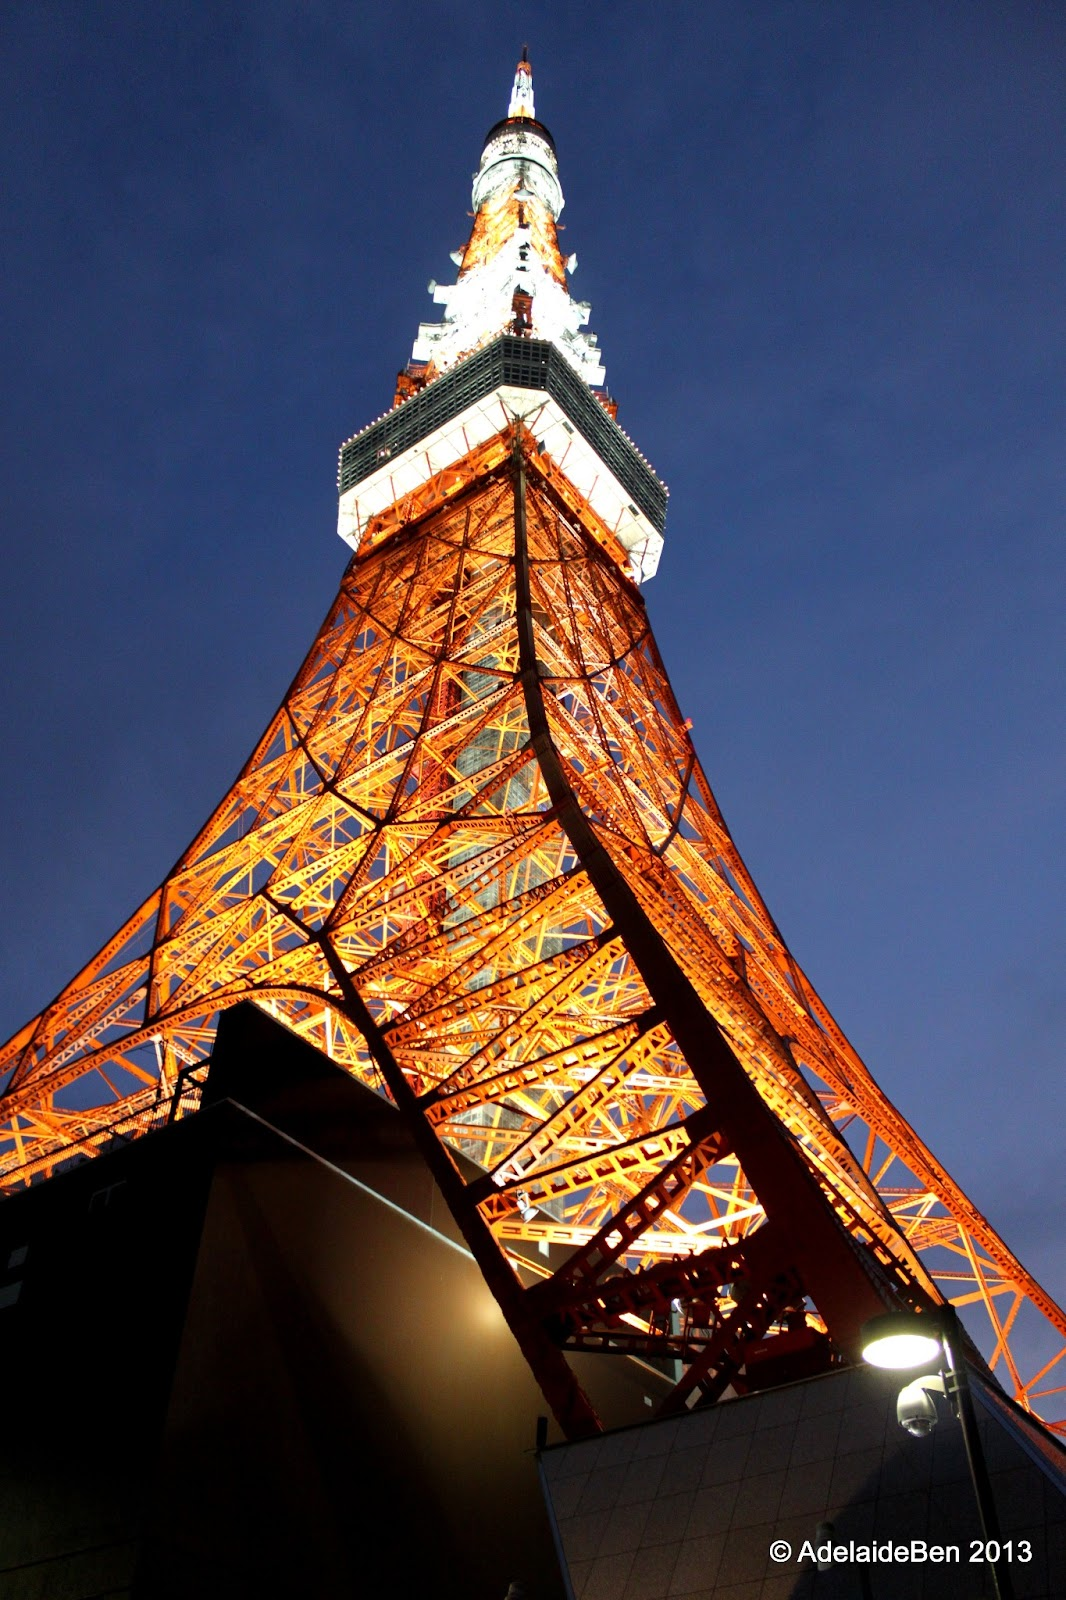 Japanese Ties Tokyo Tower Symbol Of Sight Seeing And So Much More Japan Et Ticket Kyoto Adult Tickets To The Observation Deck Are Around 820 Yen For Adults 460 Children Over 4 310 Under Main